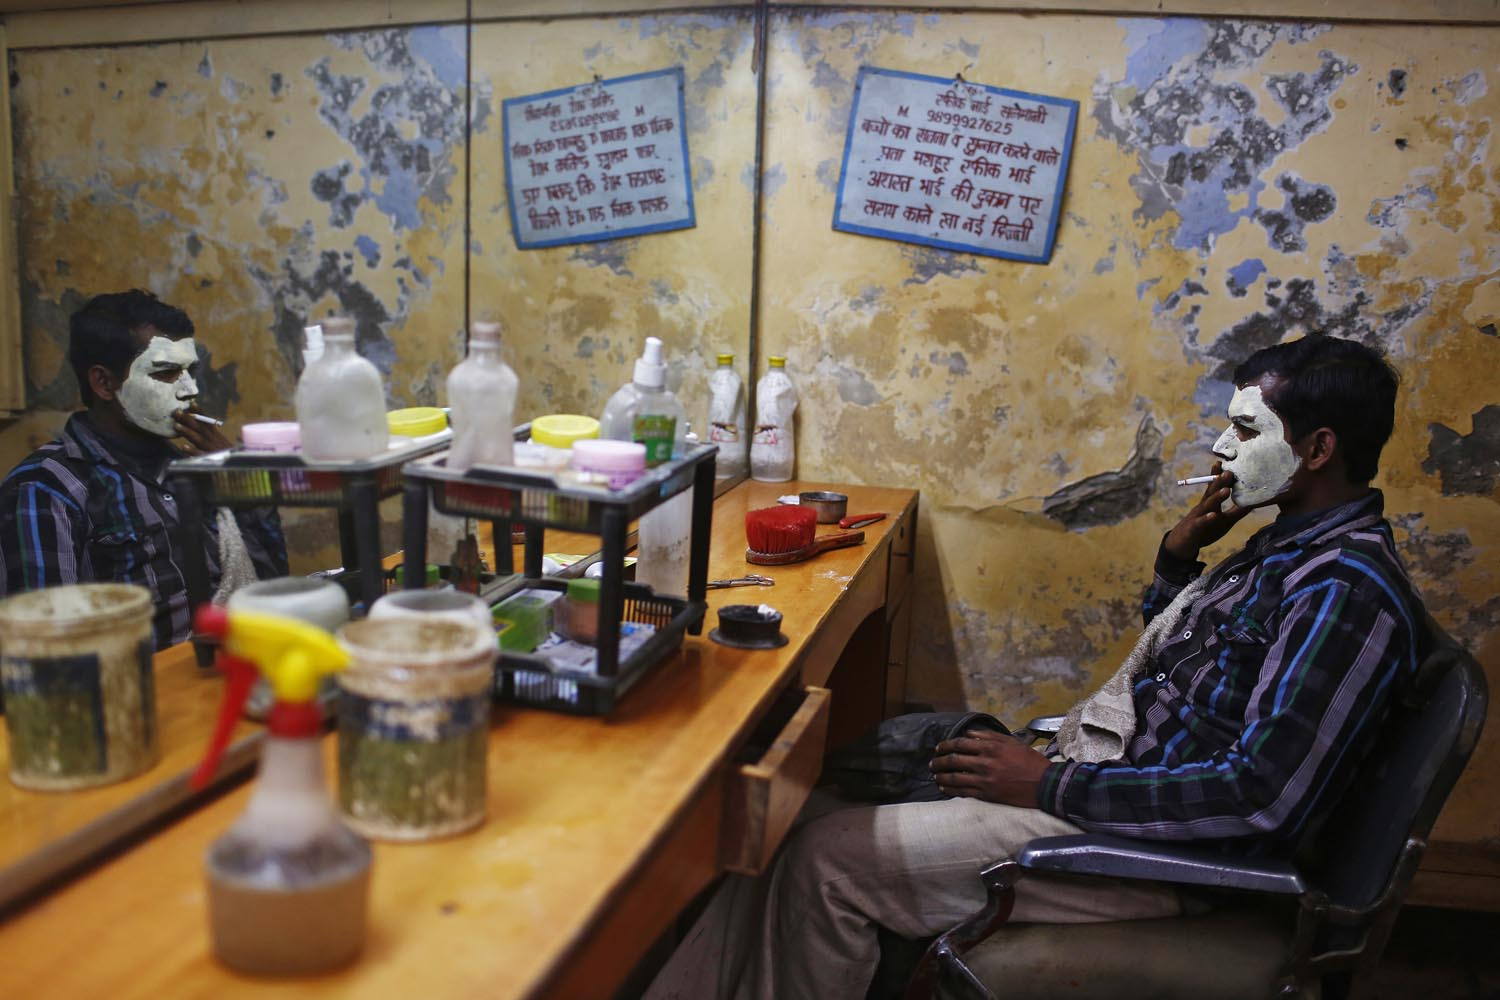 Dec. 31, 2013. A migrant laborer, his face covered with facial cream, smokes as he waits for the cream to dry at a barber shop in New Delhi, India.